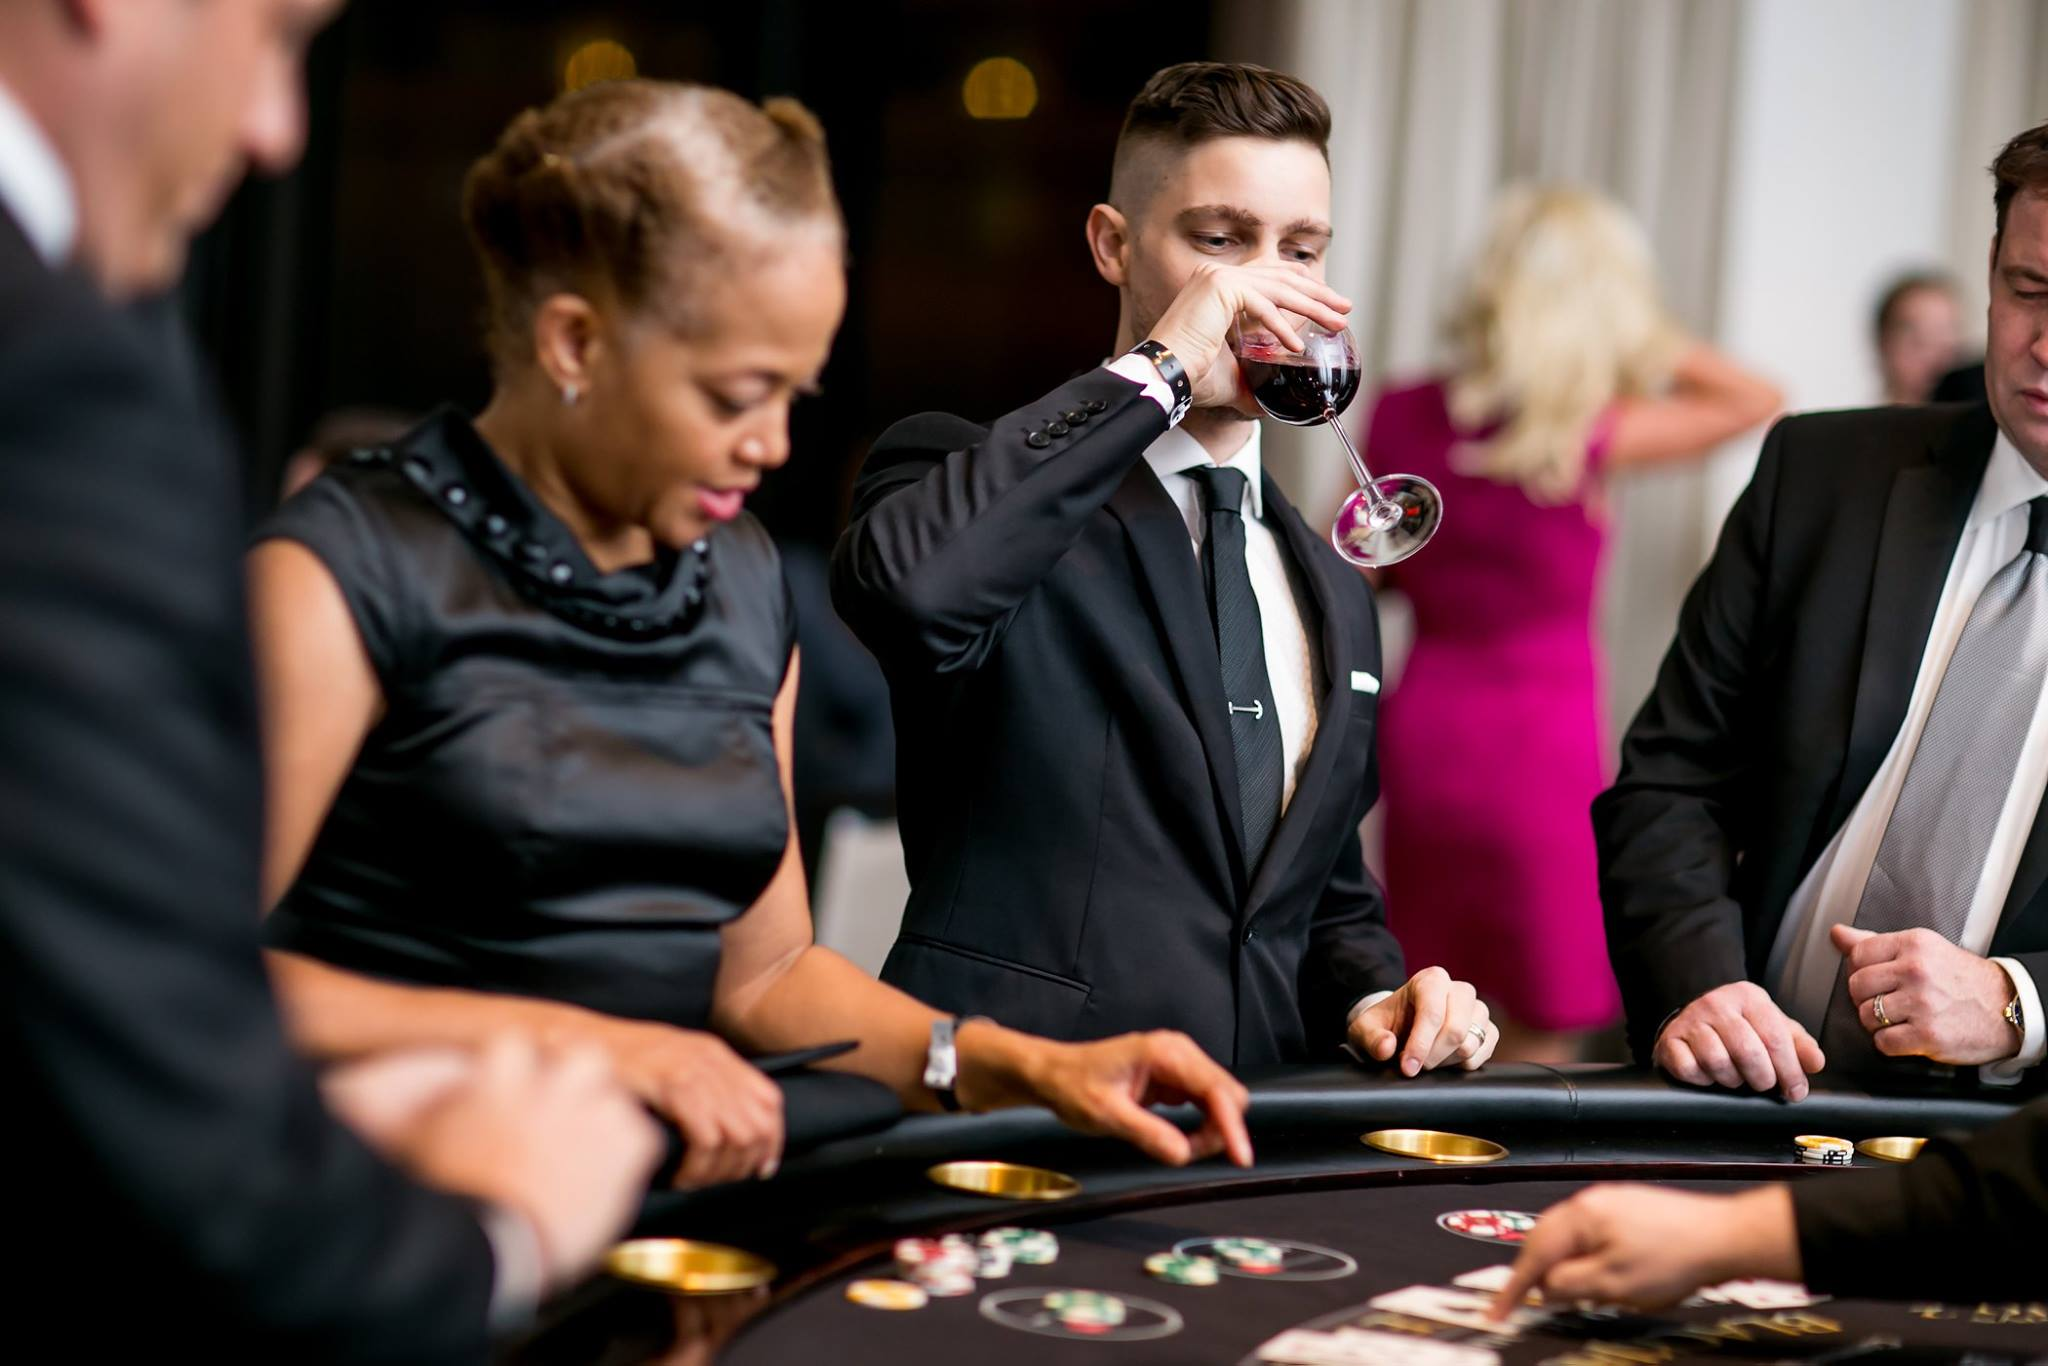 Chicago Association of REALTORS - Chicago Casino Suppliers